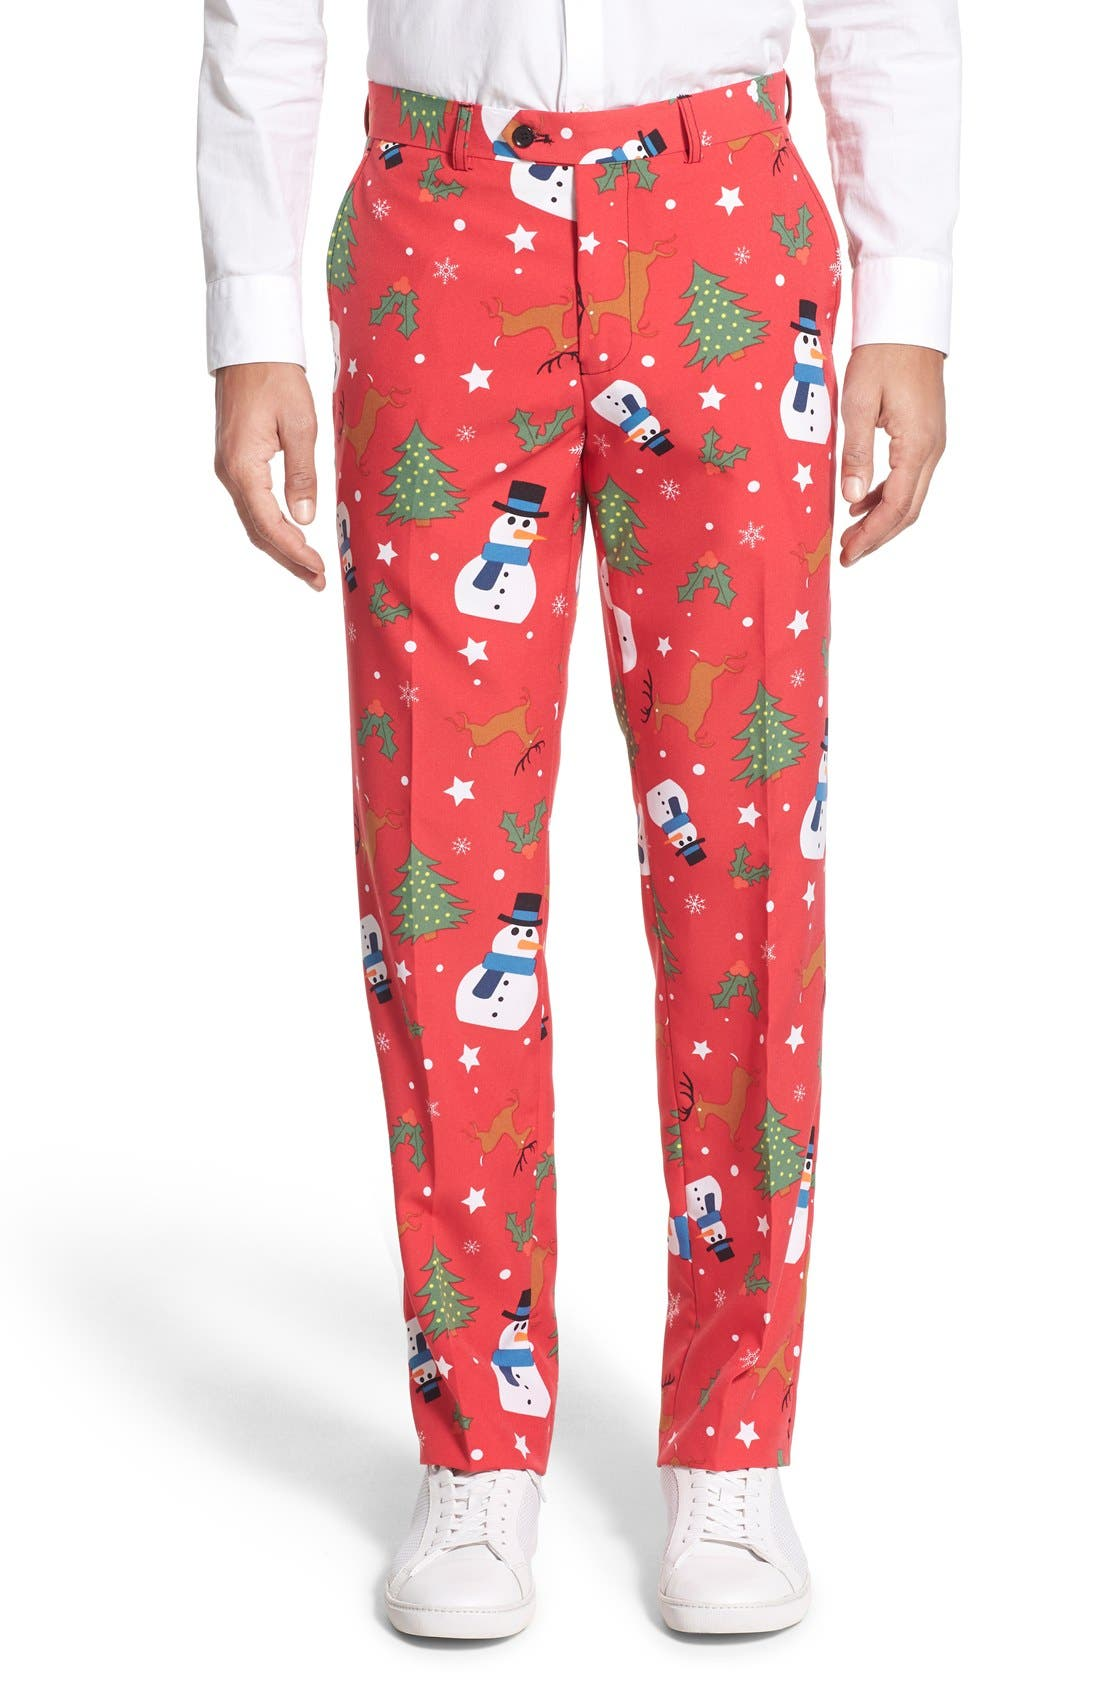 'Christmaster' Holiday Suit & Tie,                             Alternate thumbnail 5, color,                             Red